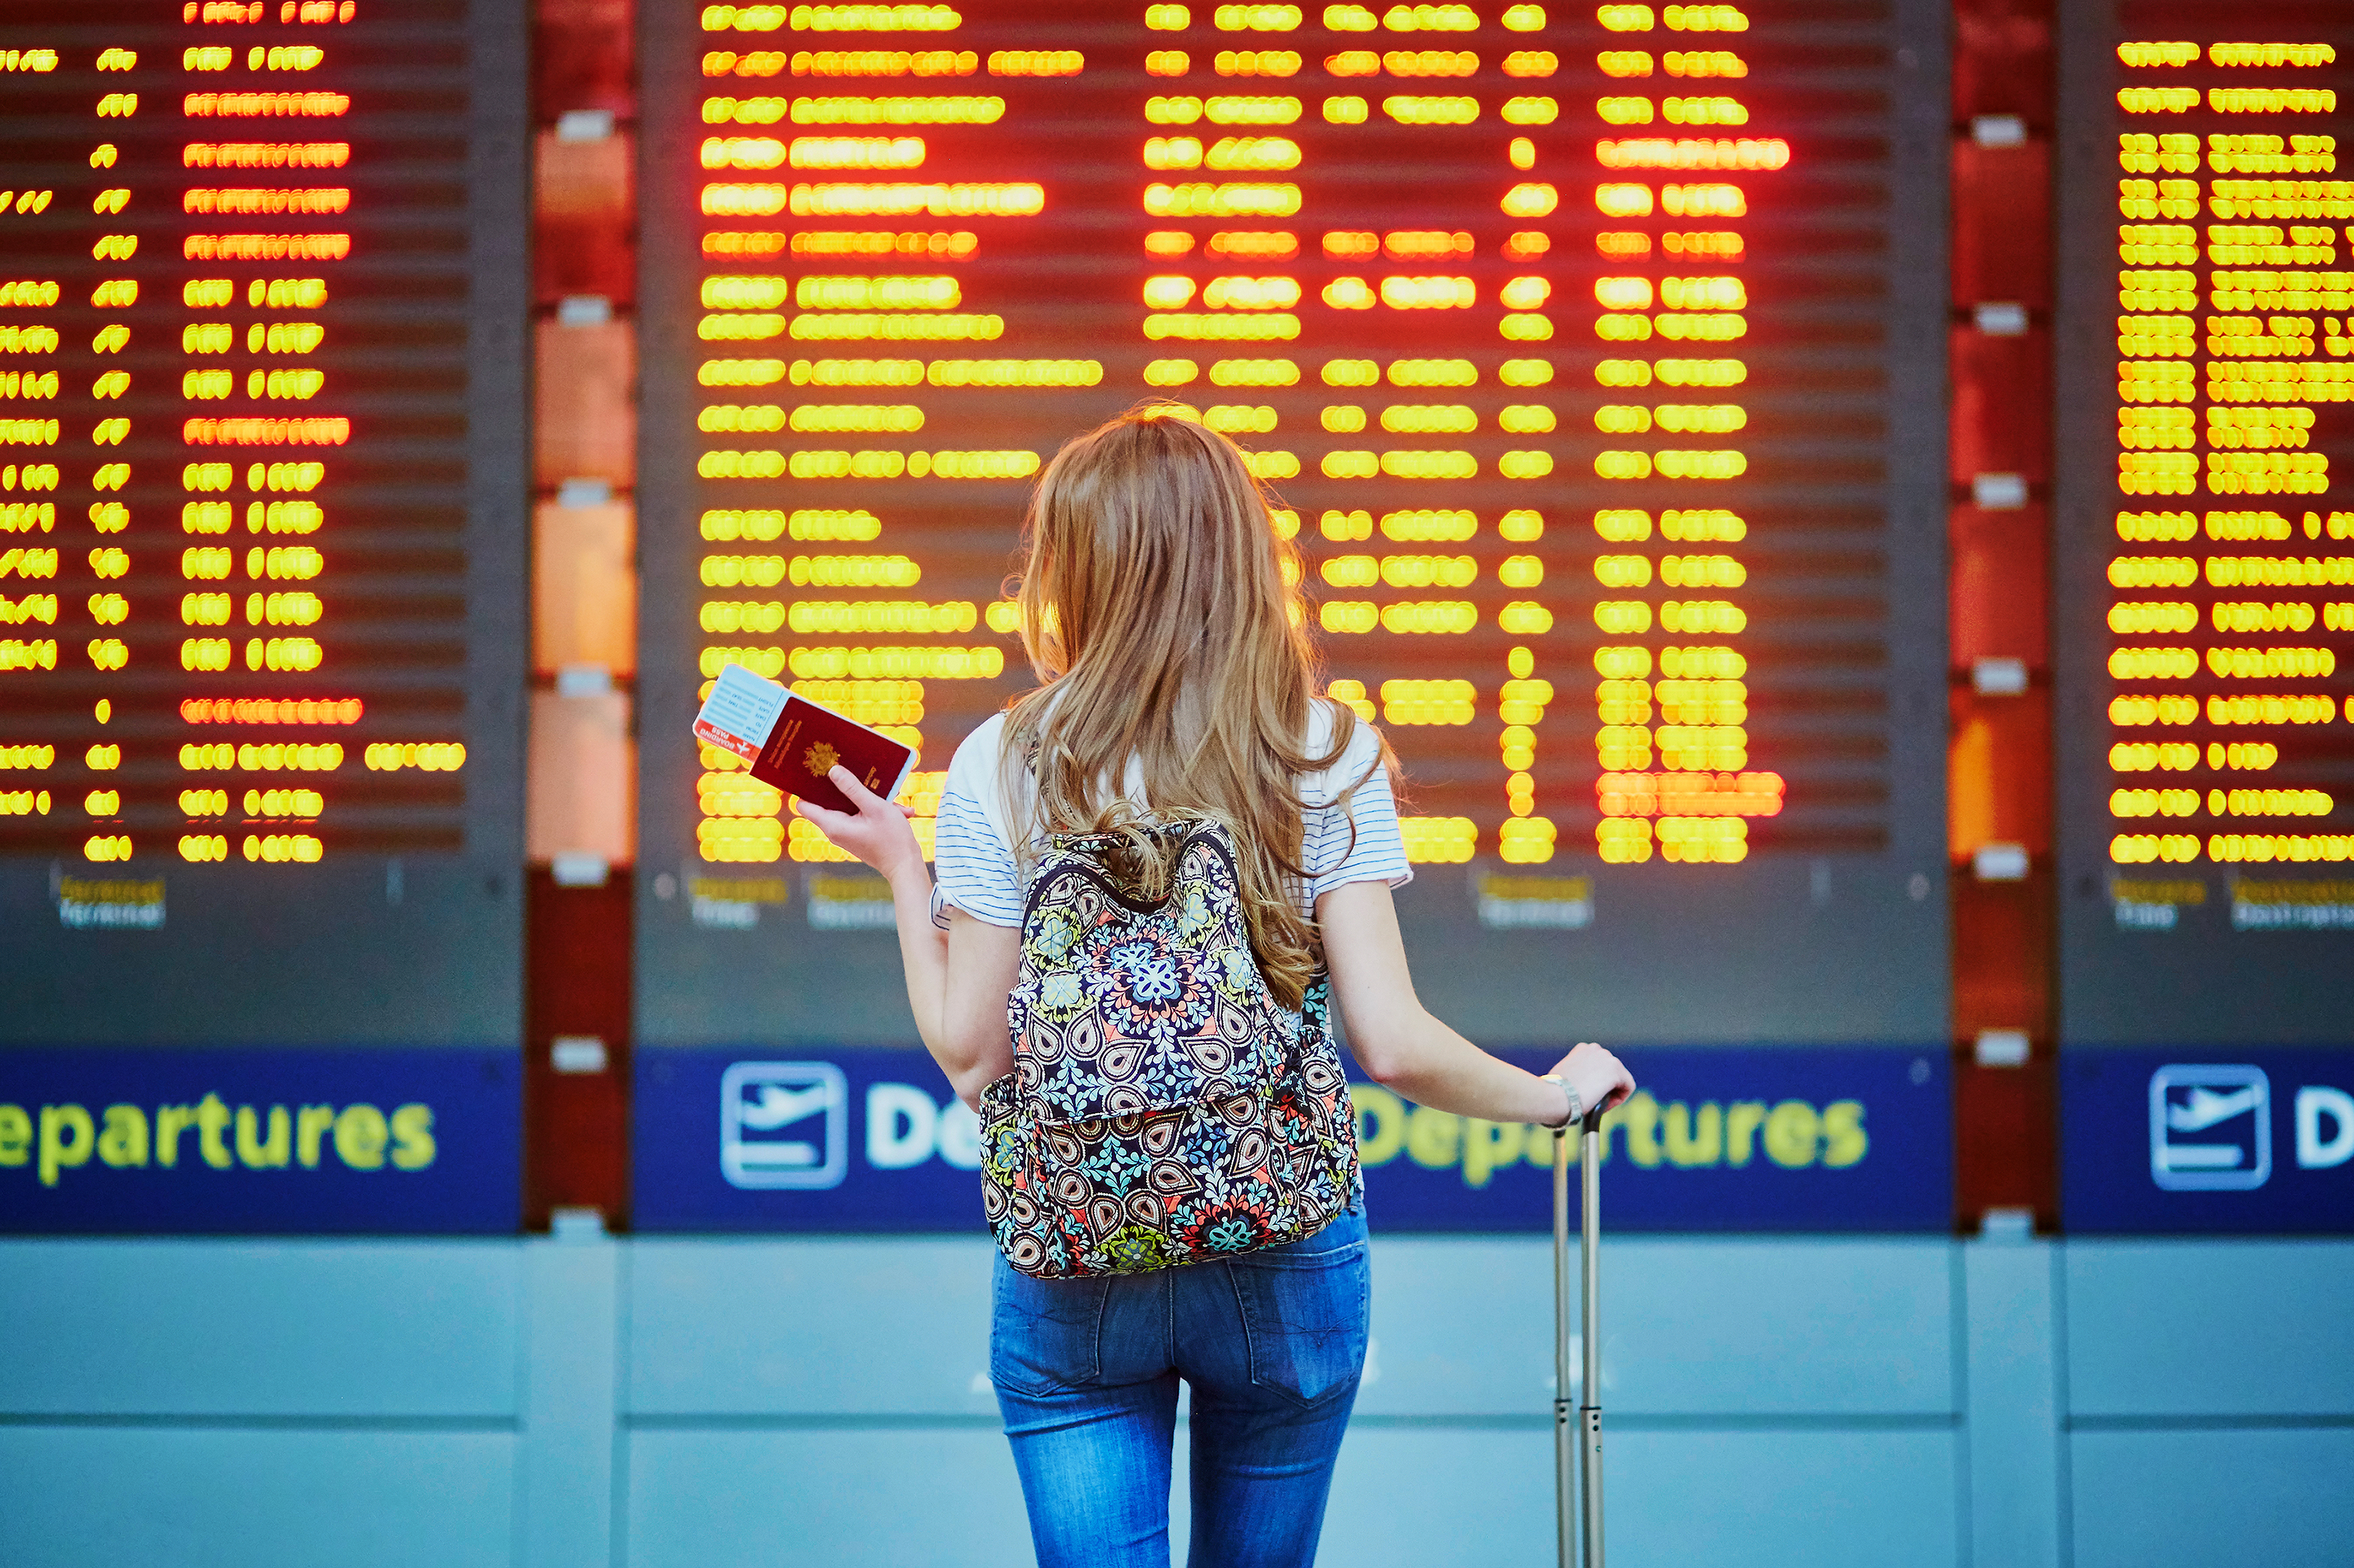 London Life Hacks for the Airport